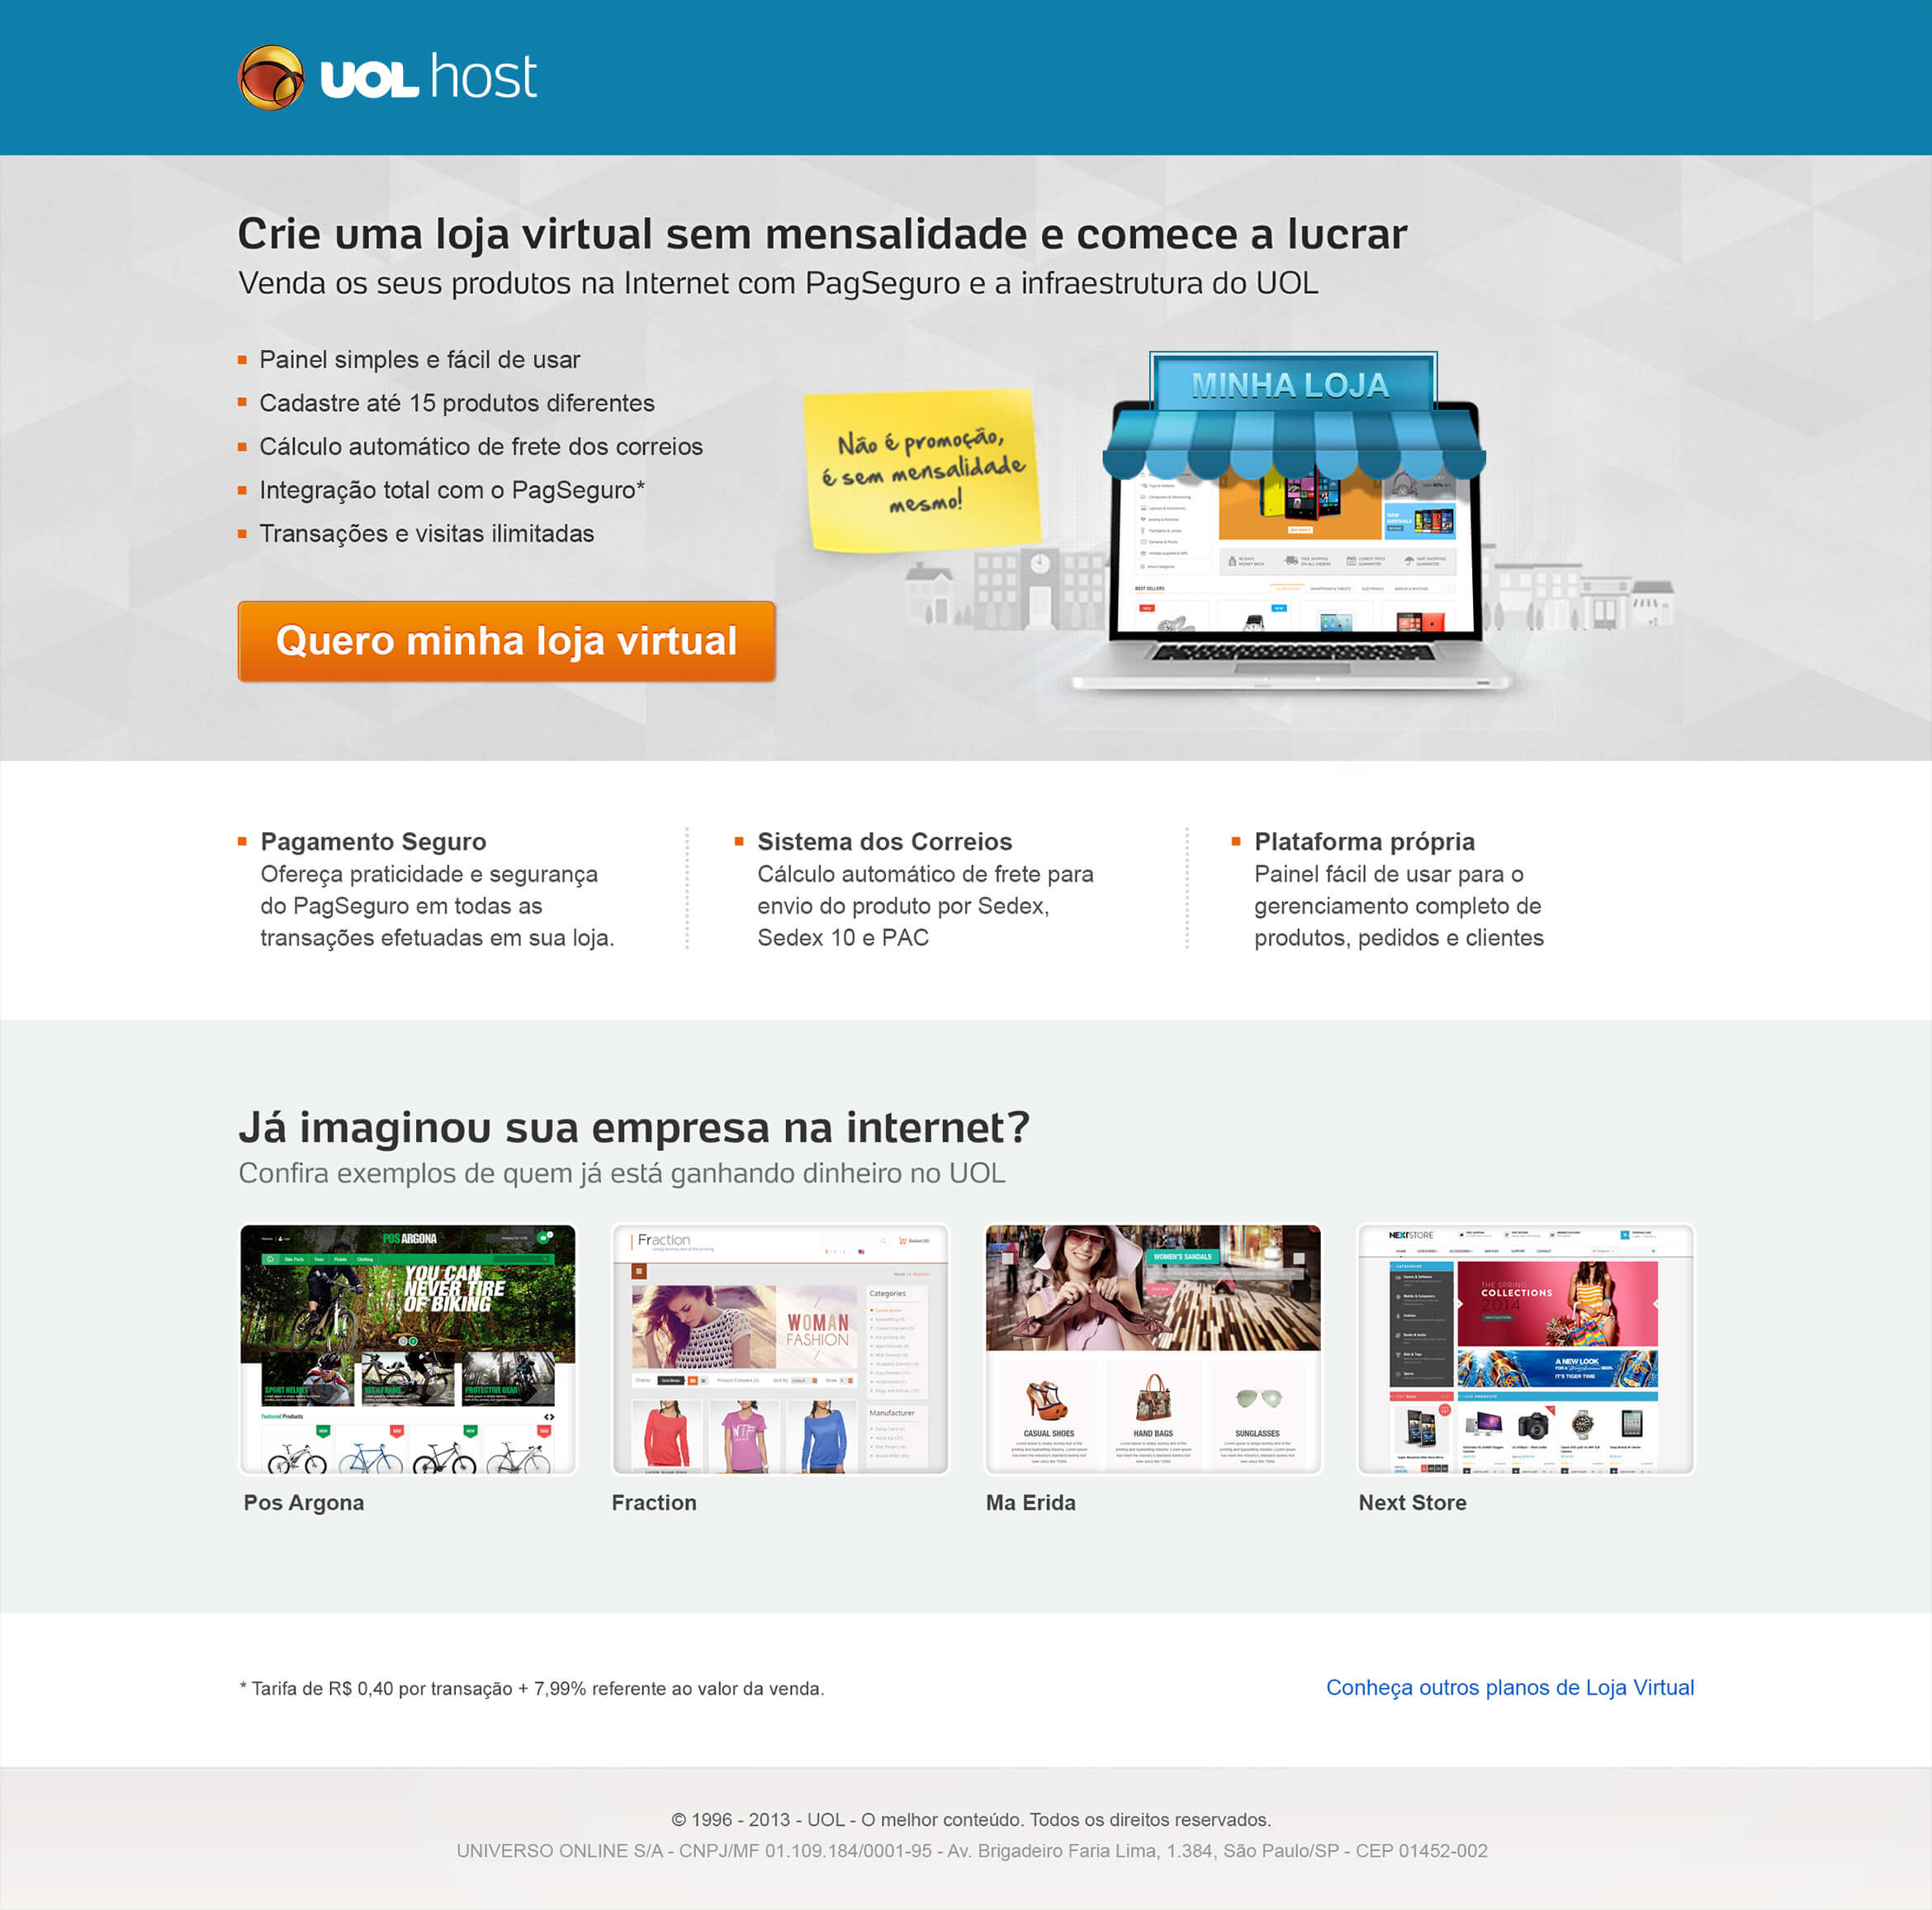 07-uol-host-landing-page